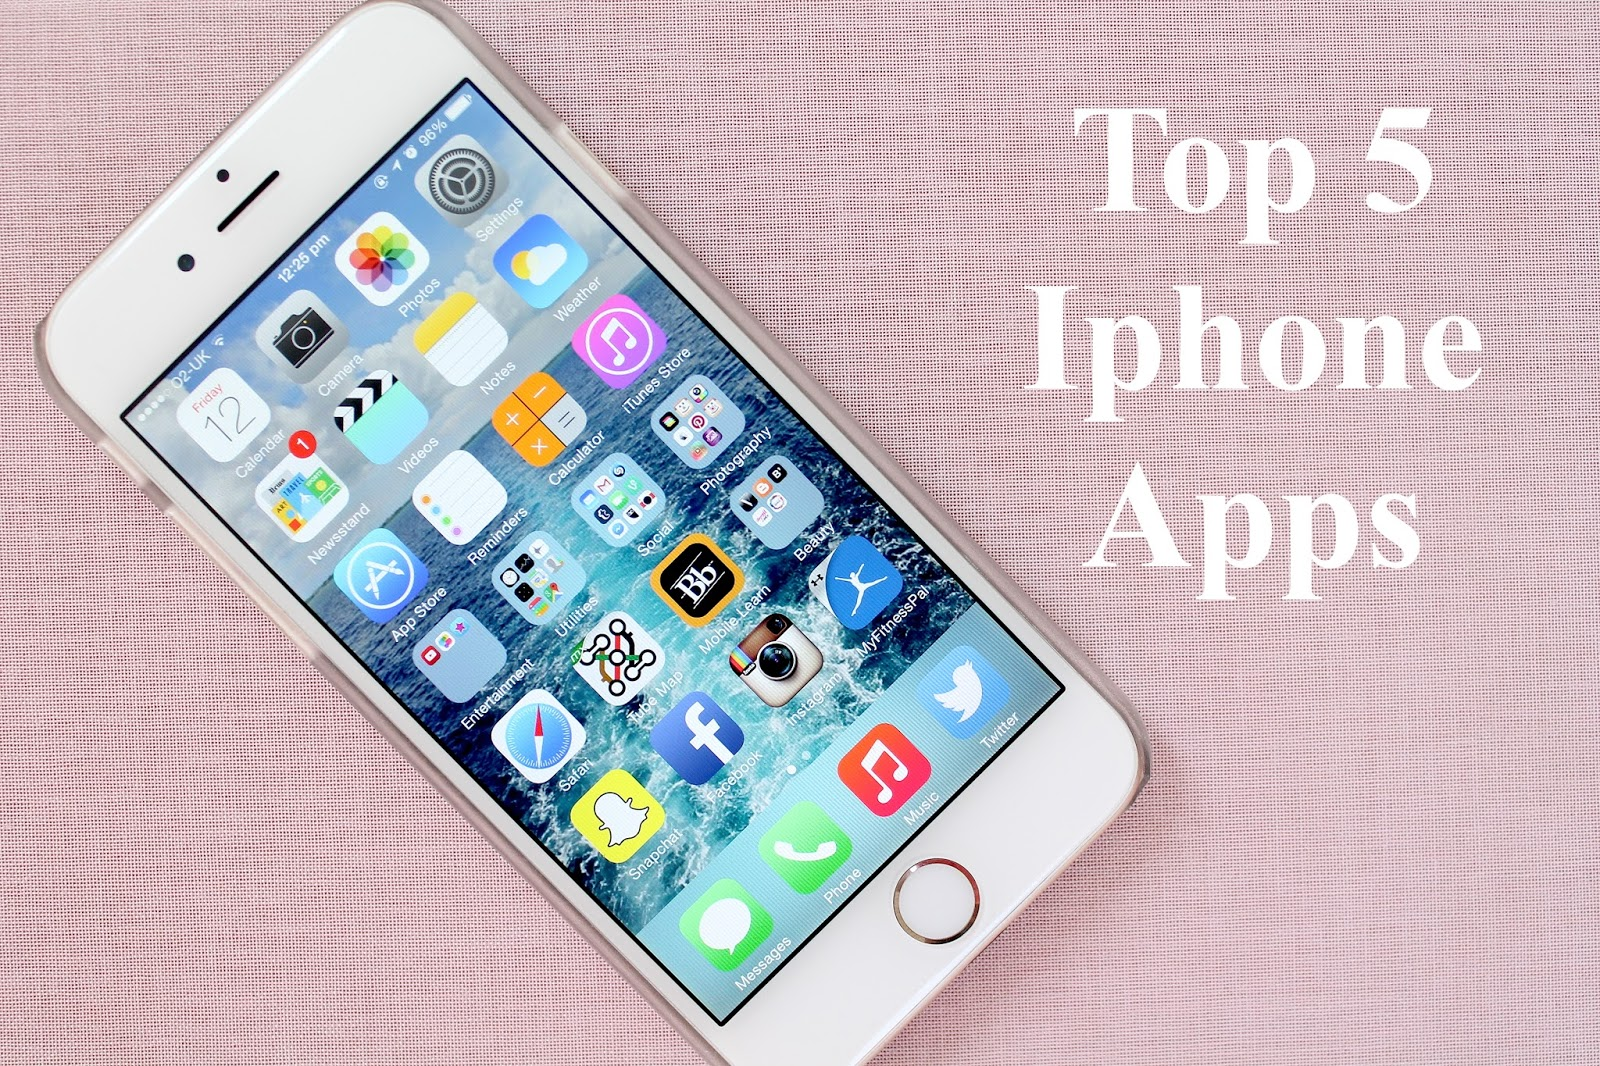 best apps for iphone top iphone apps iphone apps expensive app top 5 apps 13568